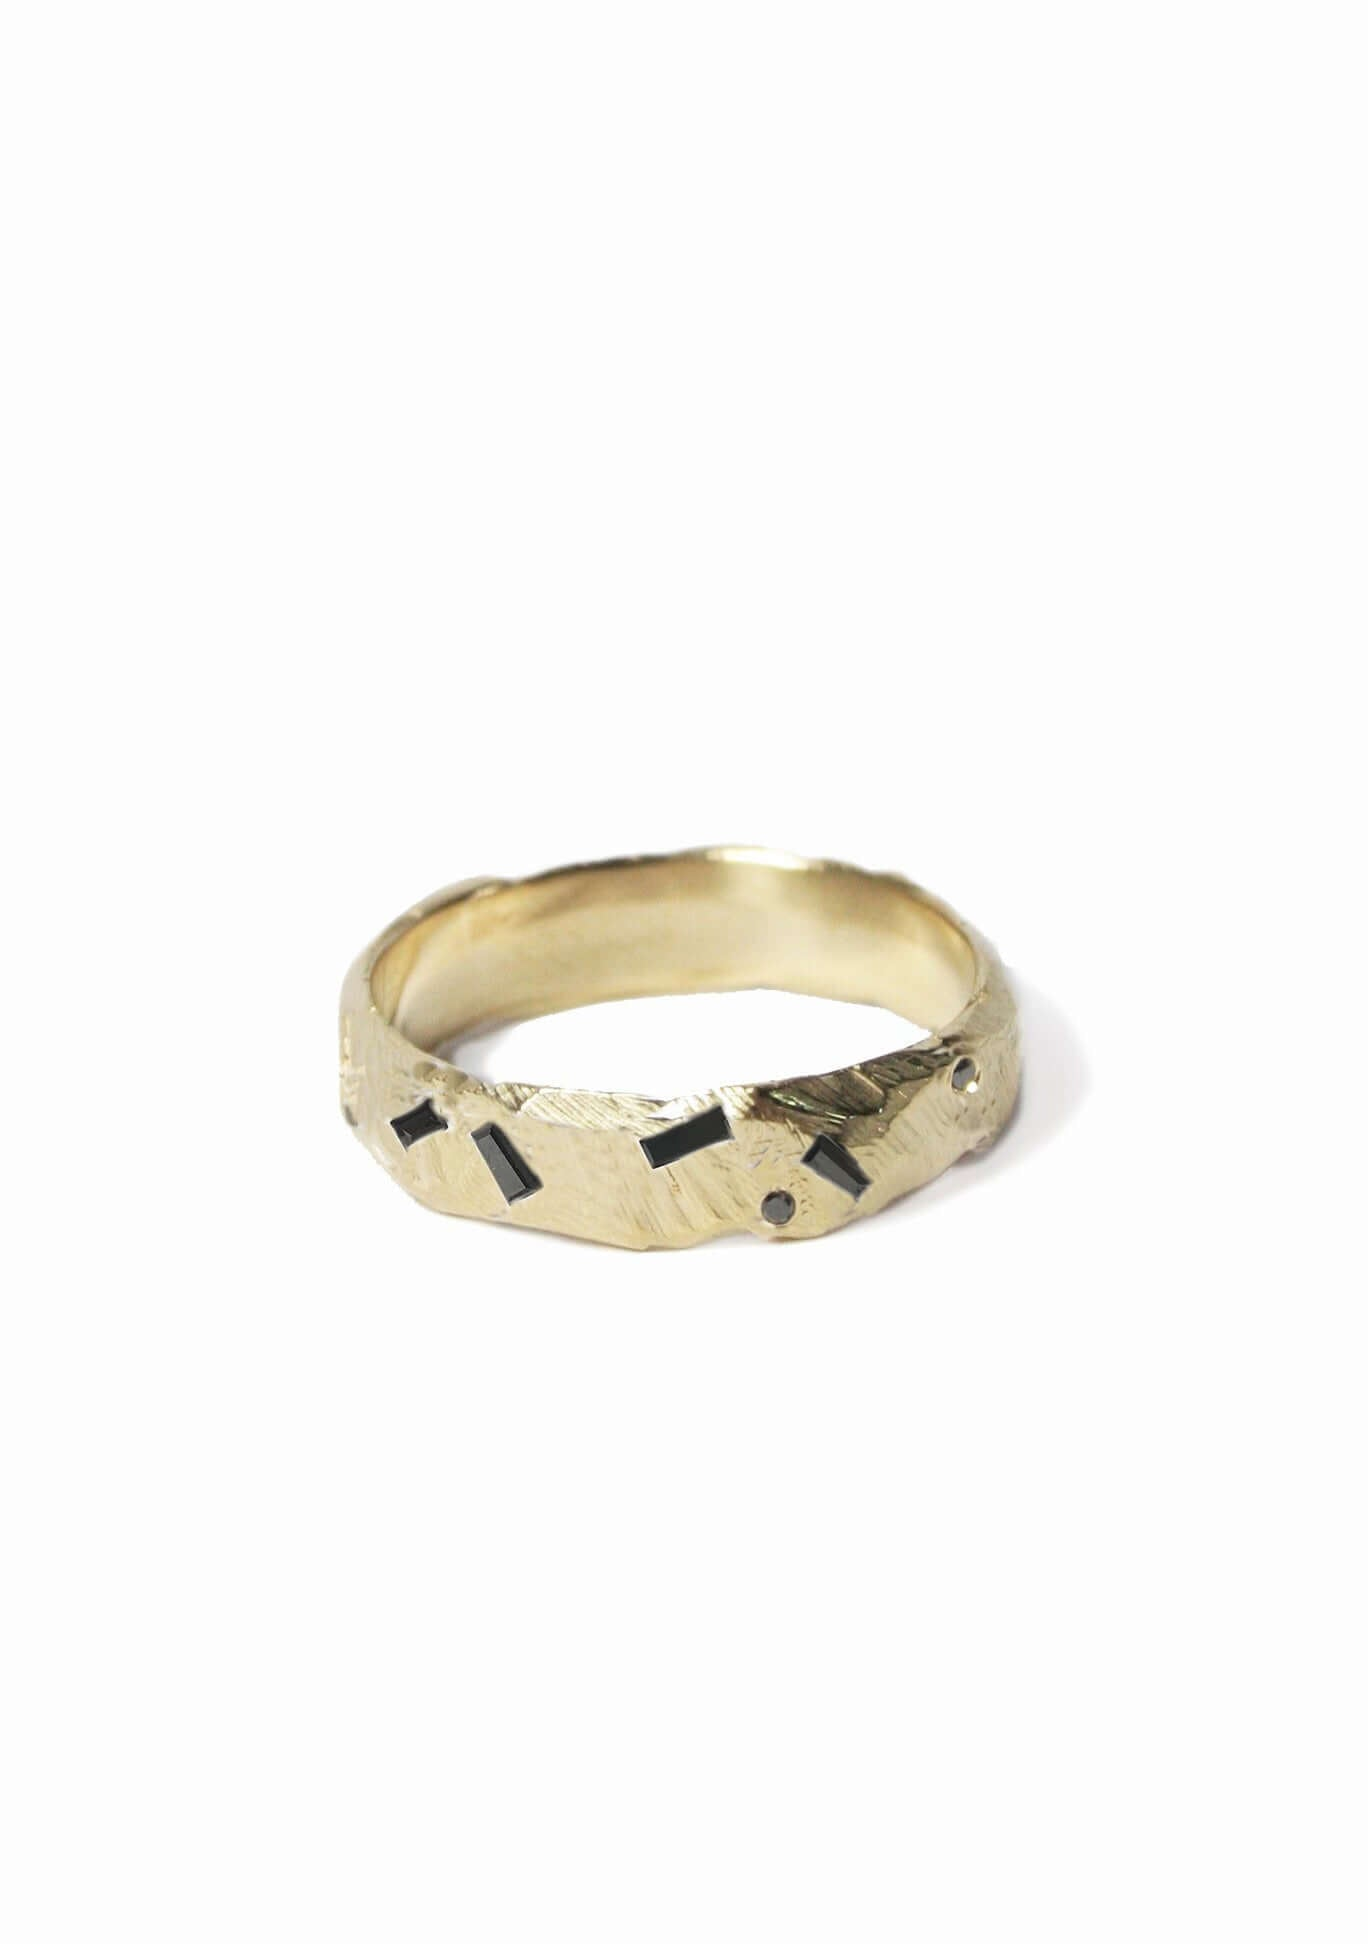 Ragged Wedding Band with diamond baguettes